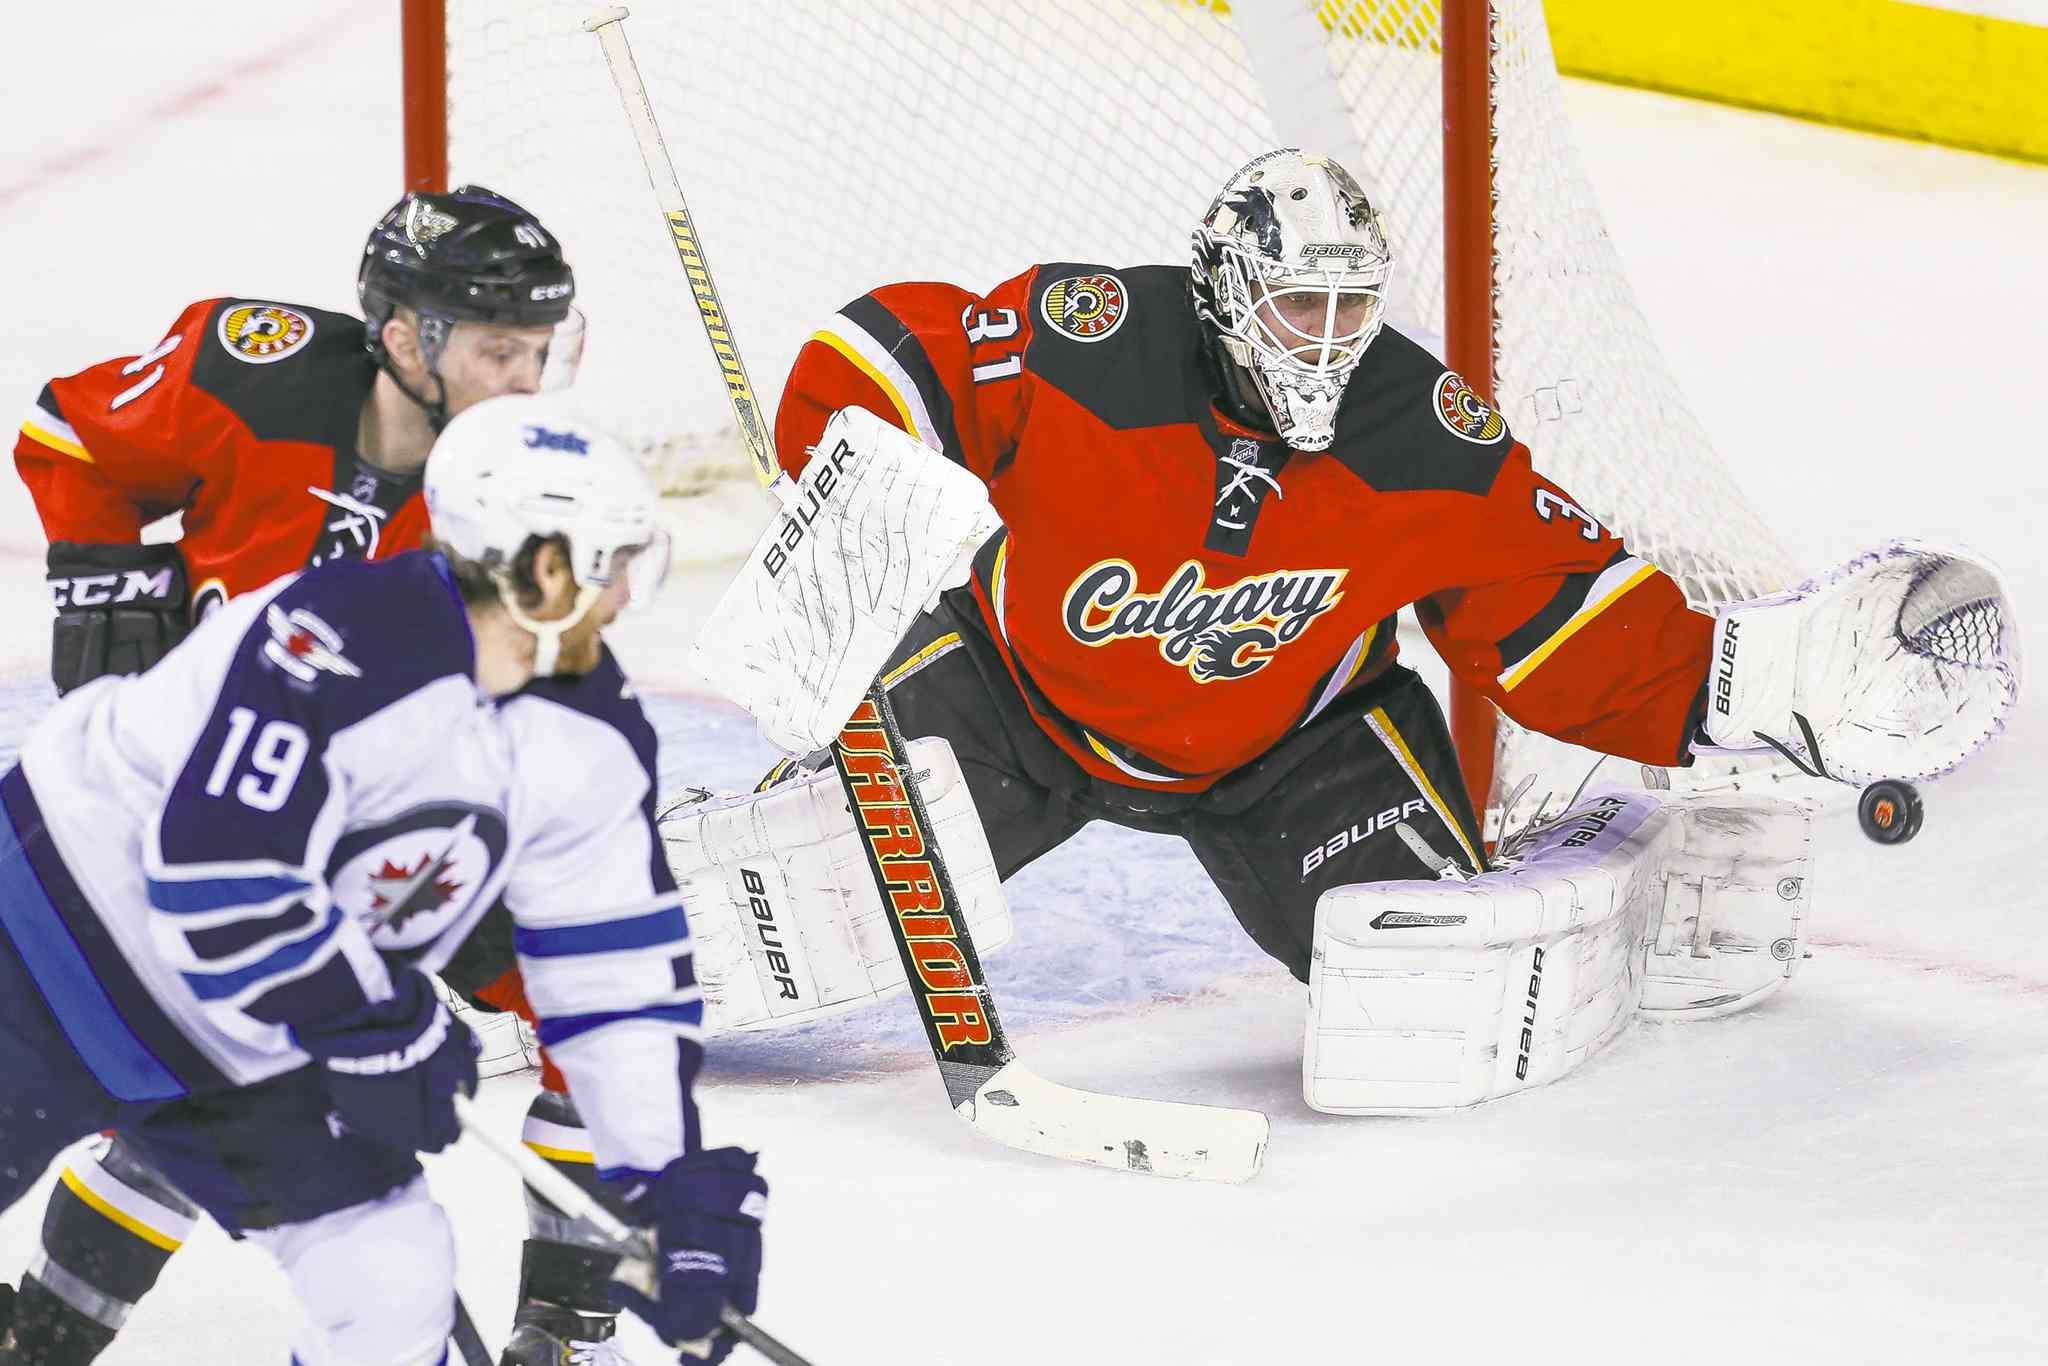 Sergei Belski / USA TODAY sportsCalgary Flames goalie Karri Ramo stymies Winnipeg Jets centre Jim Slater during first-period action on Friday night in Calgary. The game wrapped up the Jets� season.